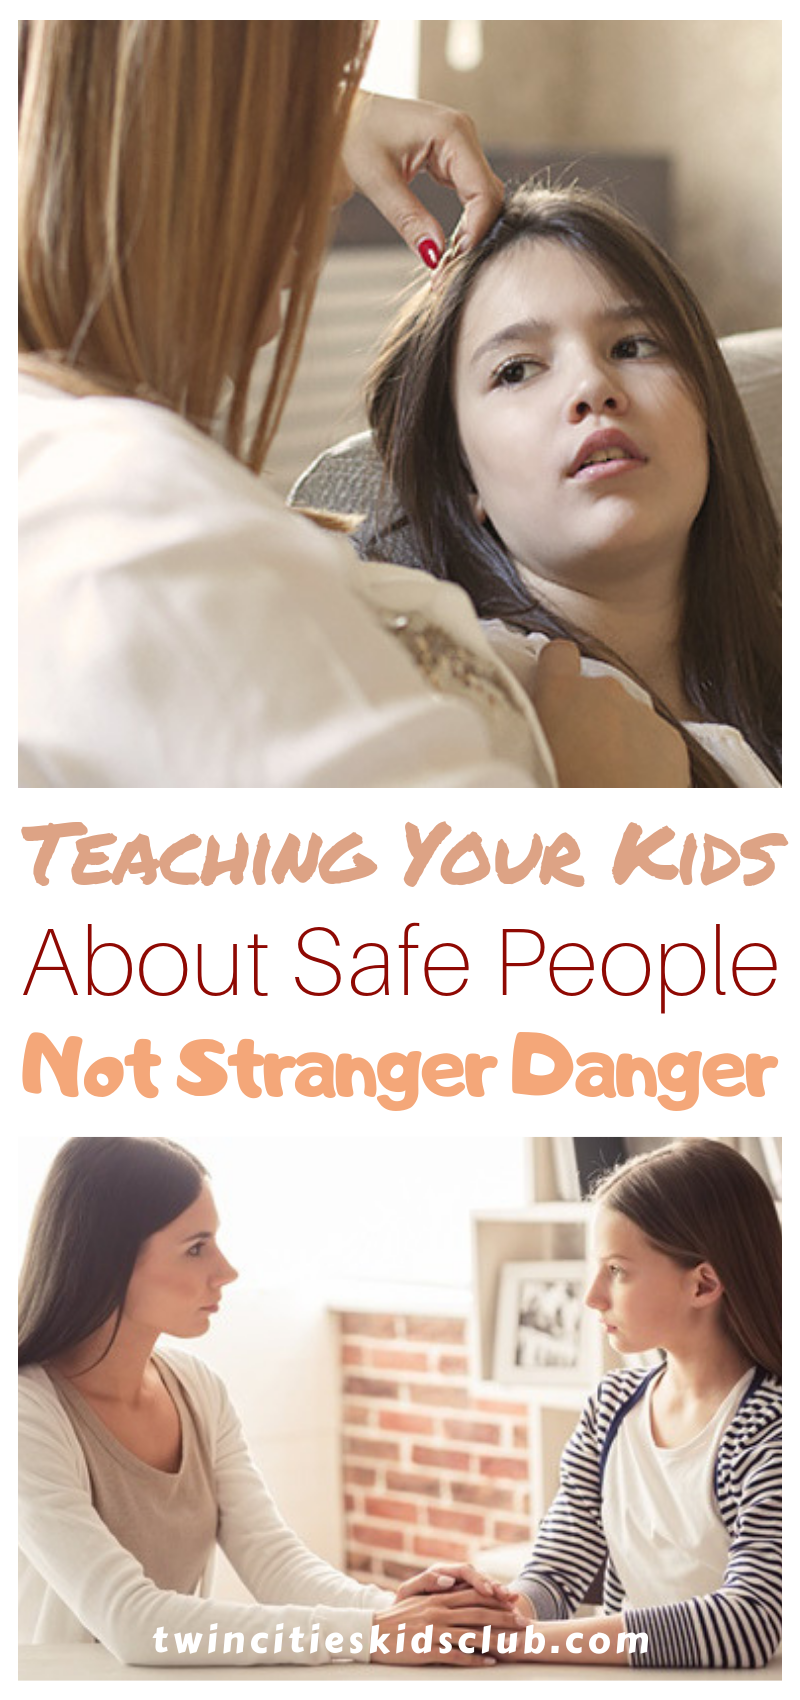 Why We Recommend Teaching Your Kids About Safe People, Not Stranger Danger